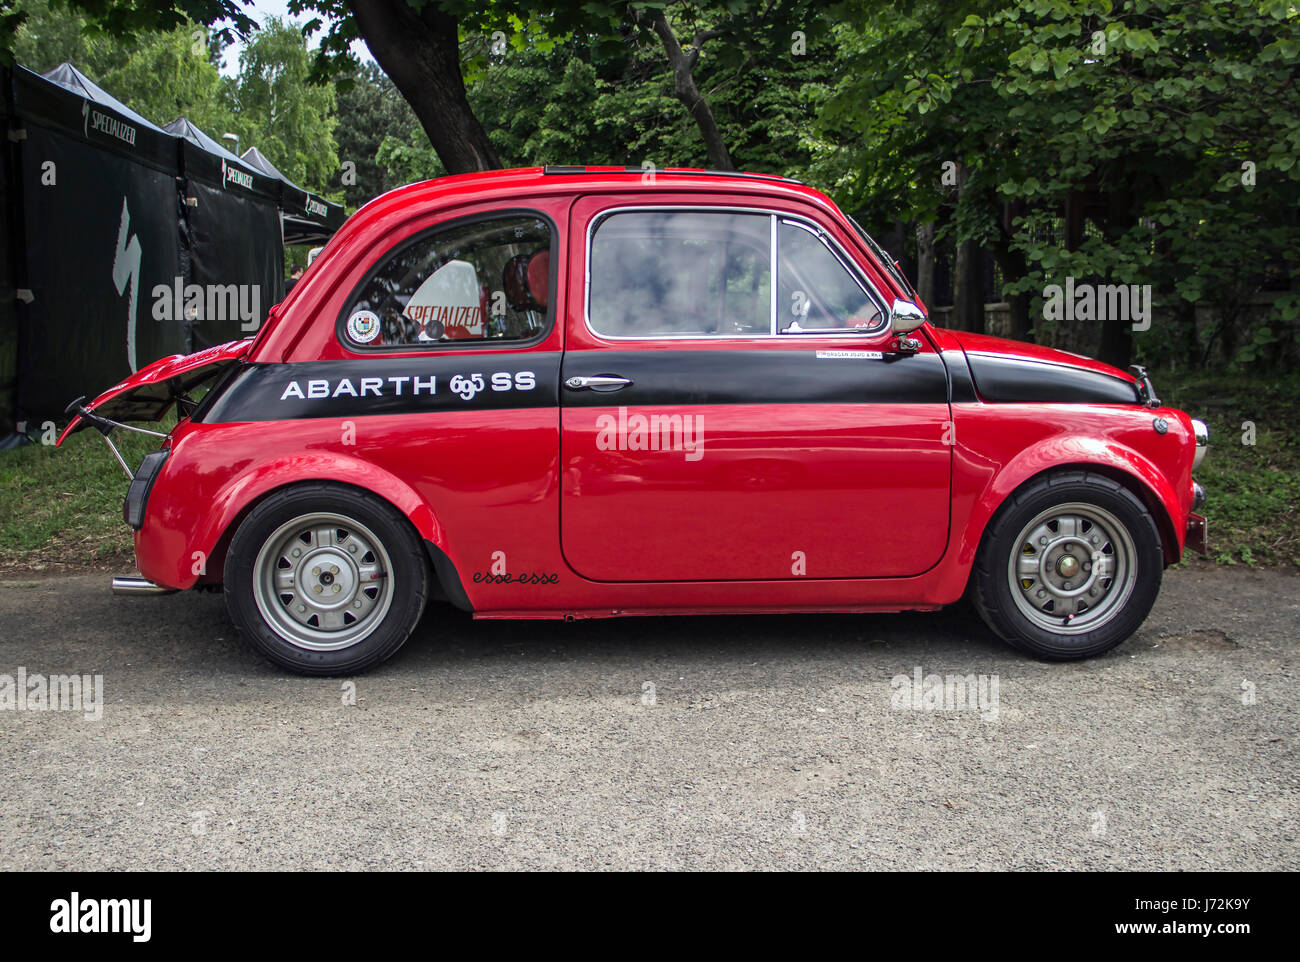 a fiat 500 abarth classic car stock photo royalty free image 142044615 alamy. Black Bedroom Furniture Sets. Home Design Ideas